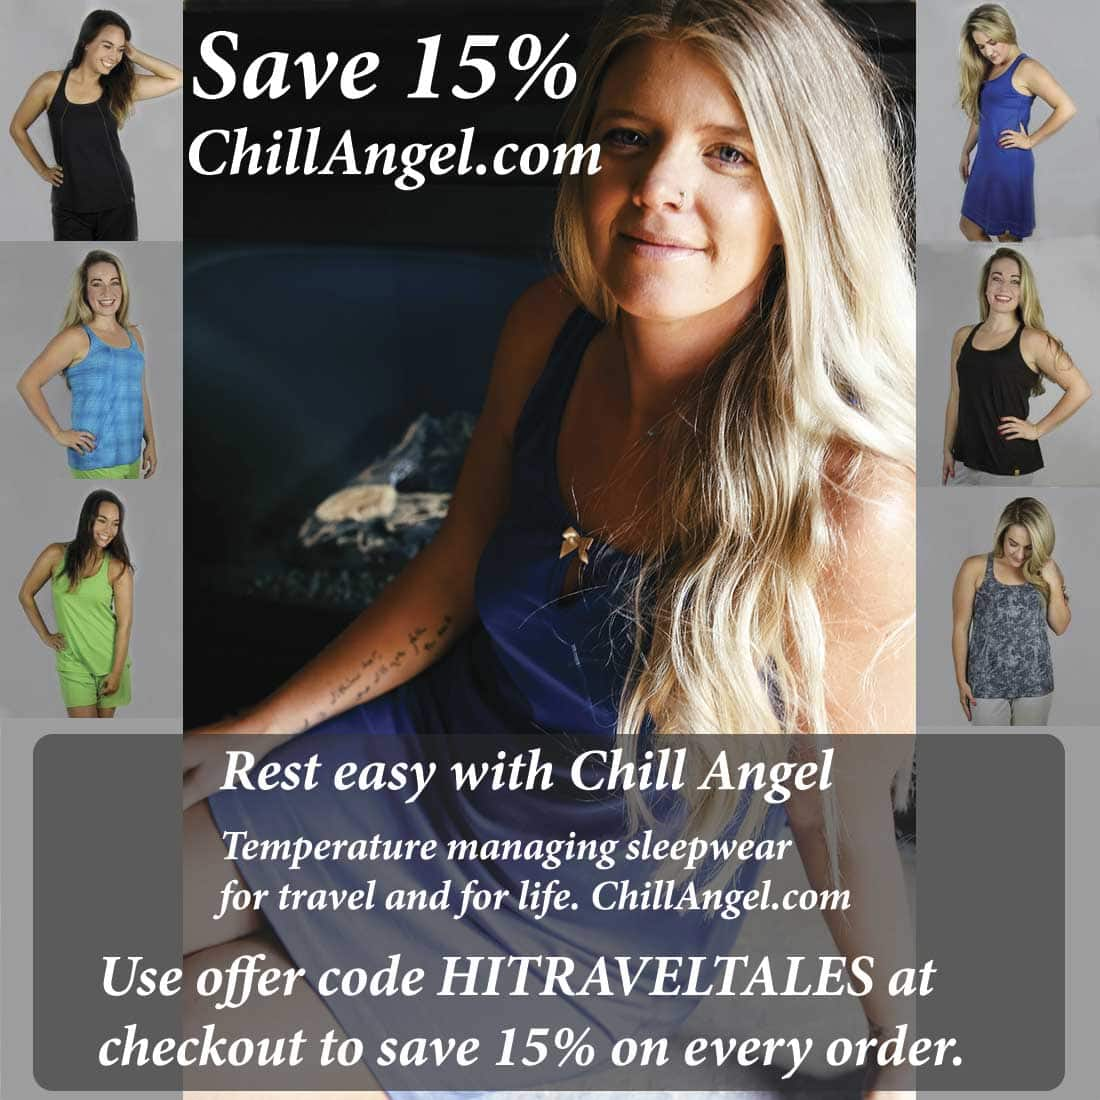 Chill Angel temperature managed sleepwear